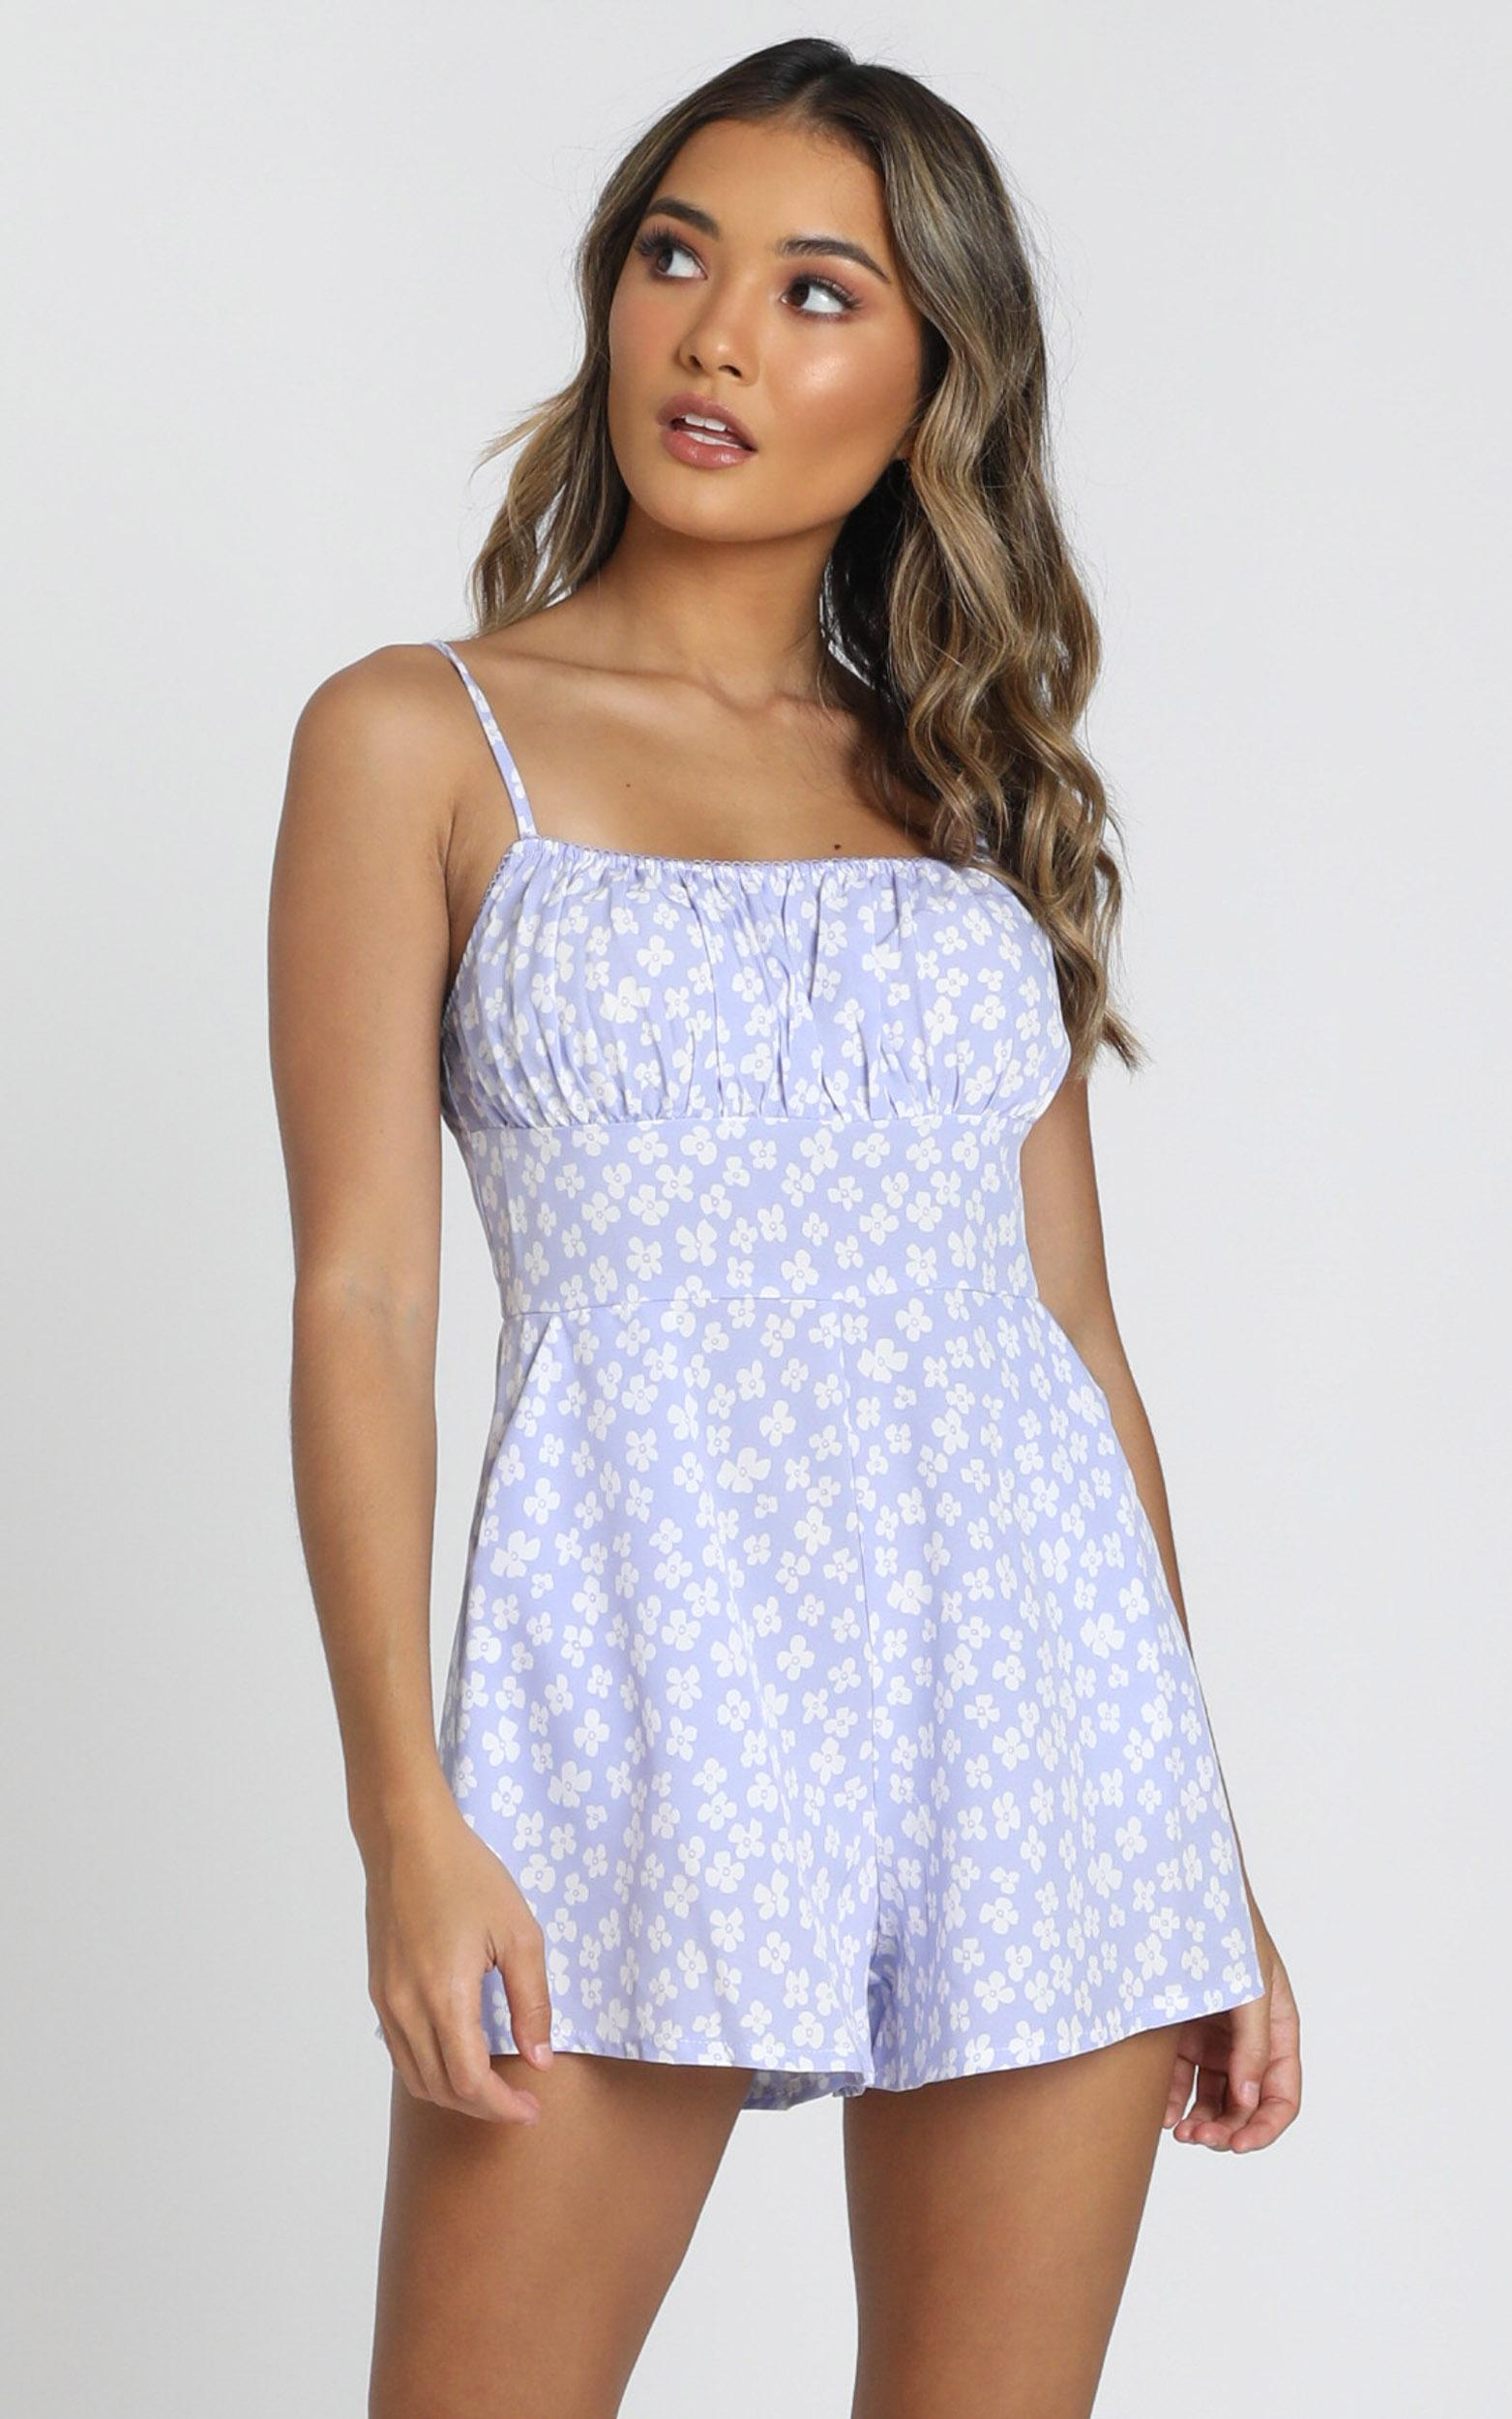 Sorbie Strappy Playsuit in blue floral - 6 (XS), Blue, hi-res image number null